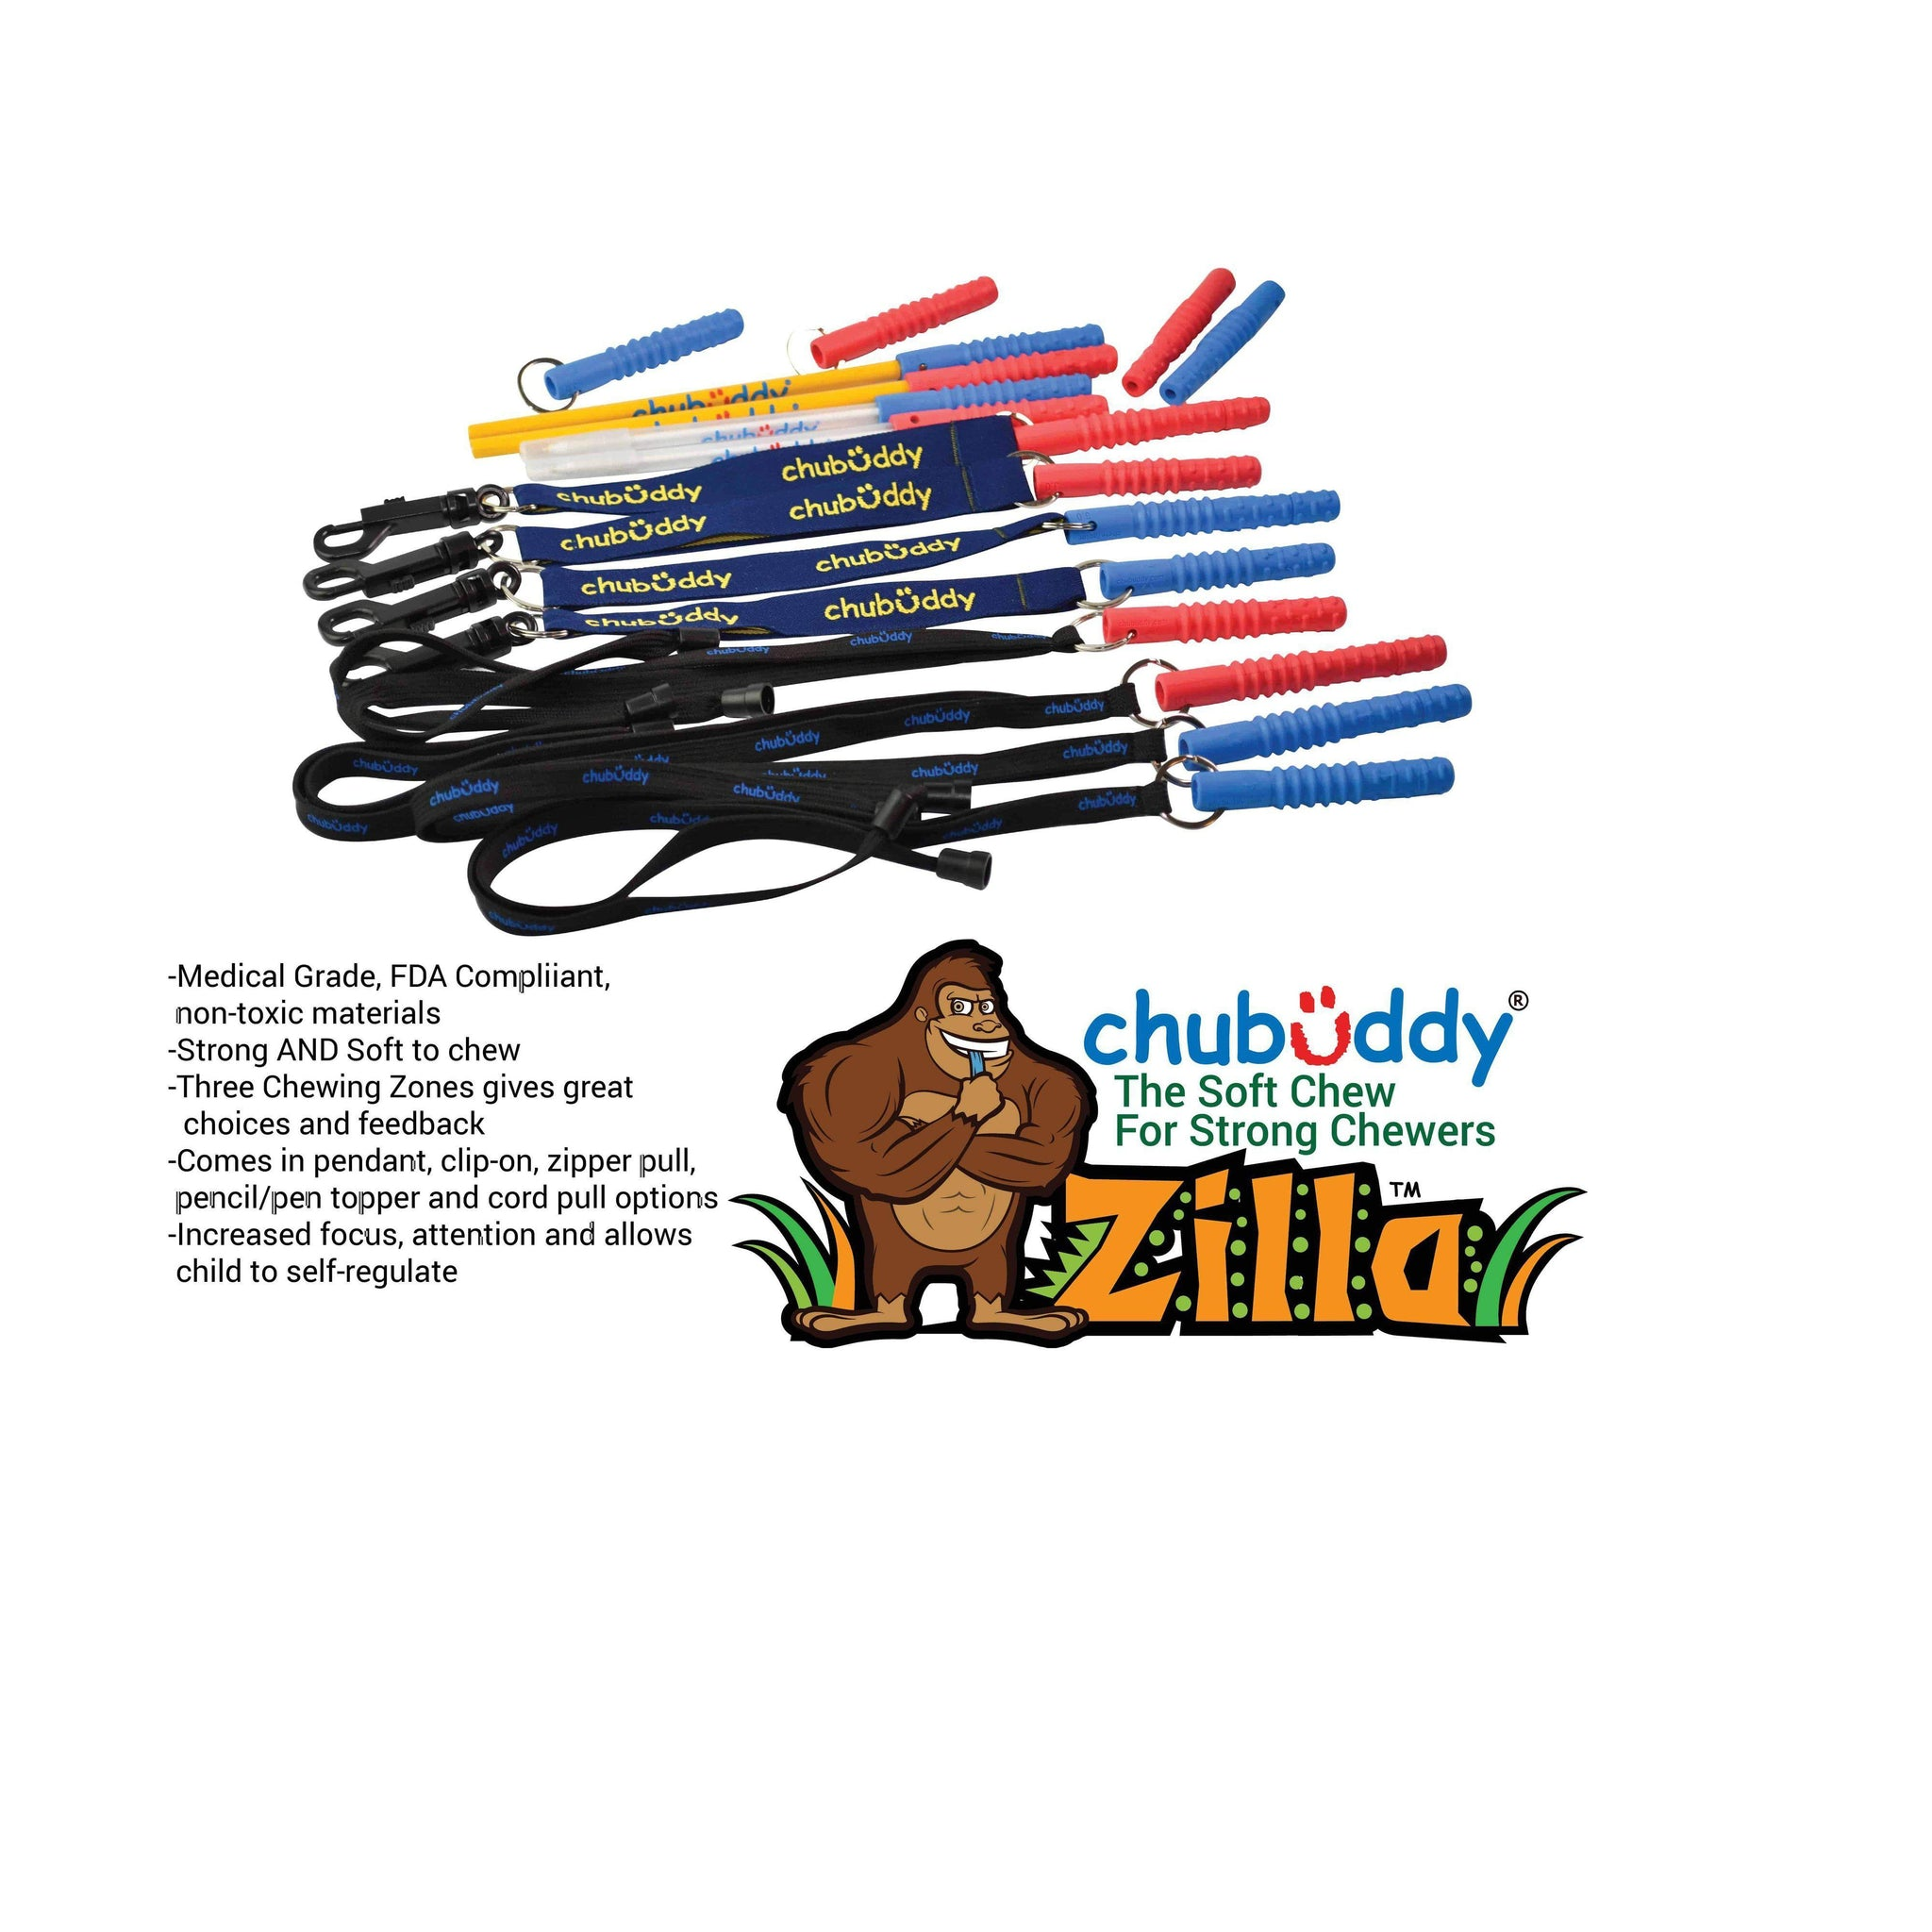 Chubuddy Blue Cord Zilla with Black Cord and Install Pack